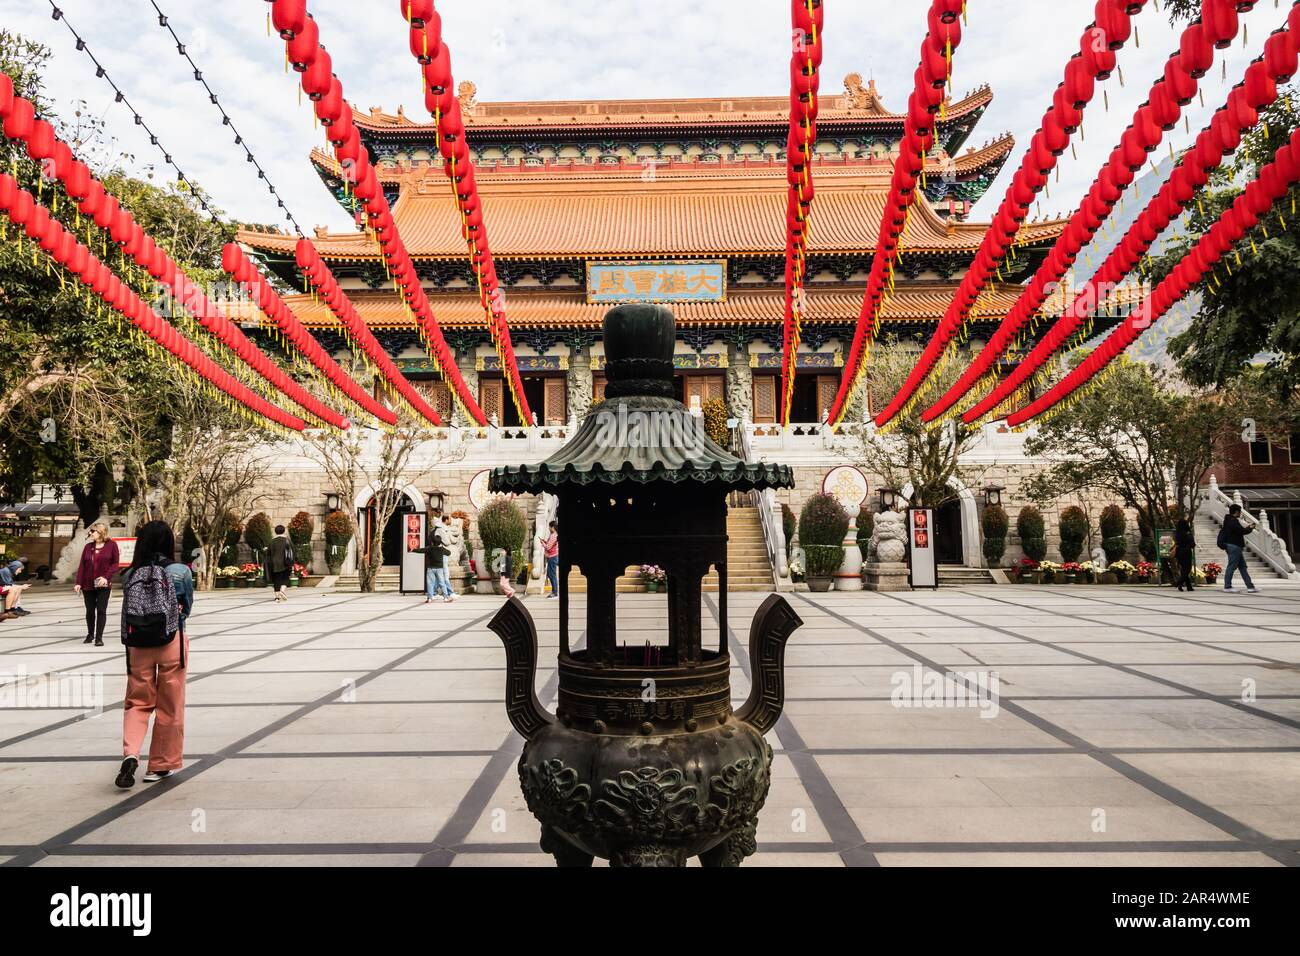 Po Lin Monastery courtyard with traditional Chinese New Year decorations and Hall of Great Hero, Lantau Island, Hong Kong Stock Photo